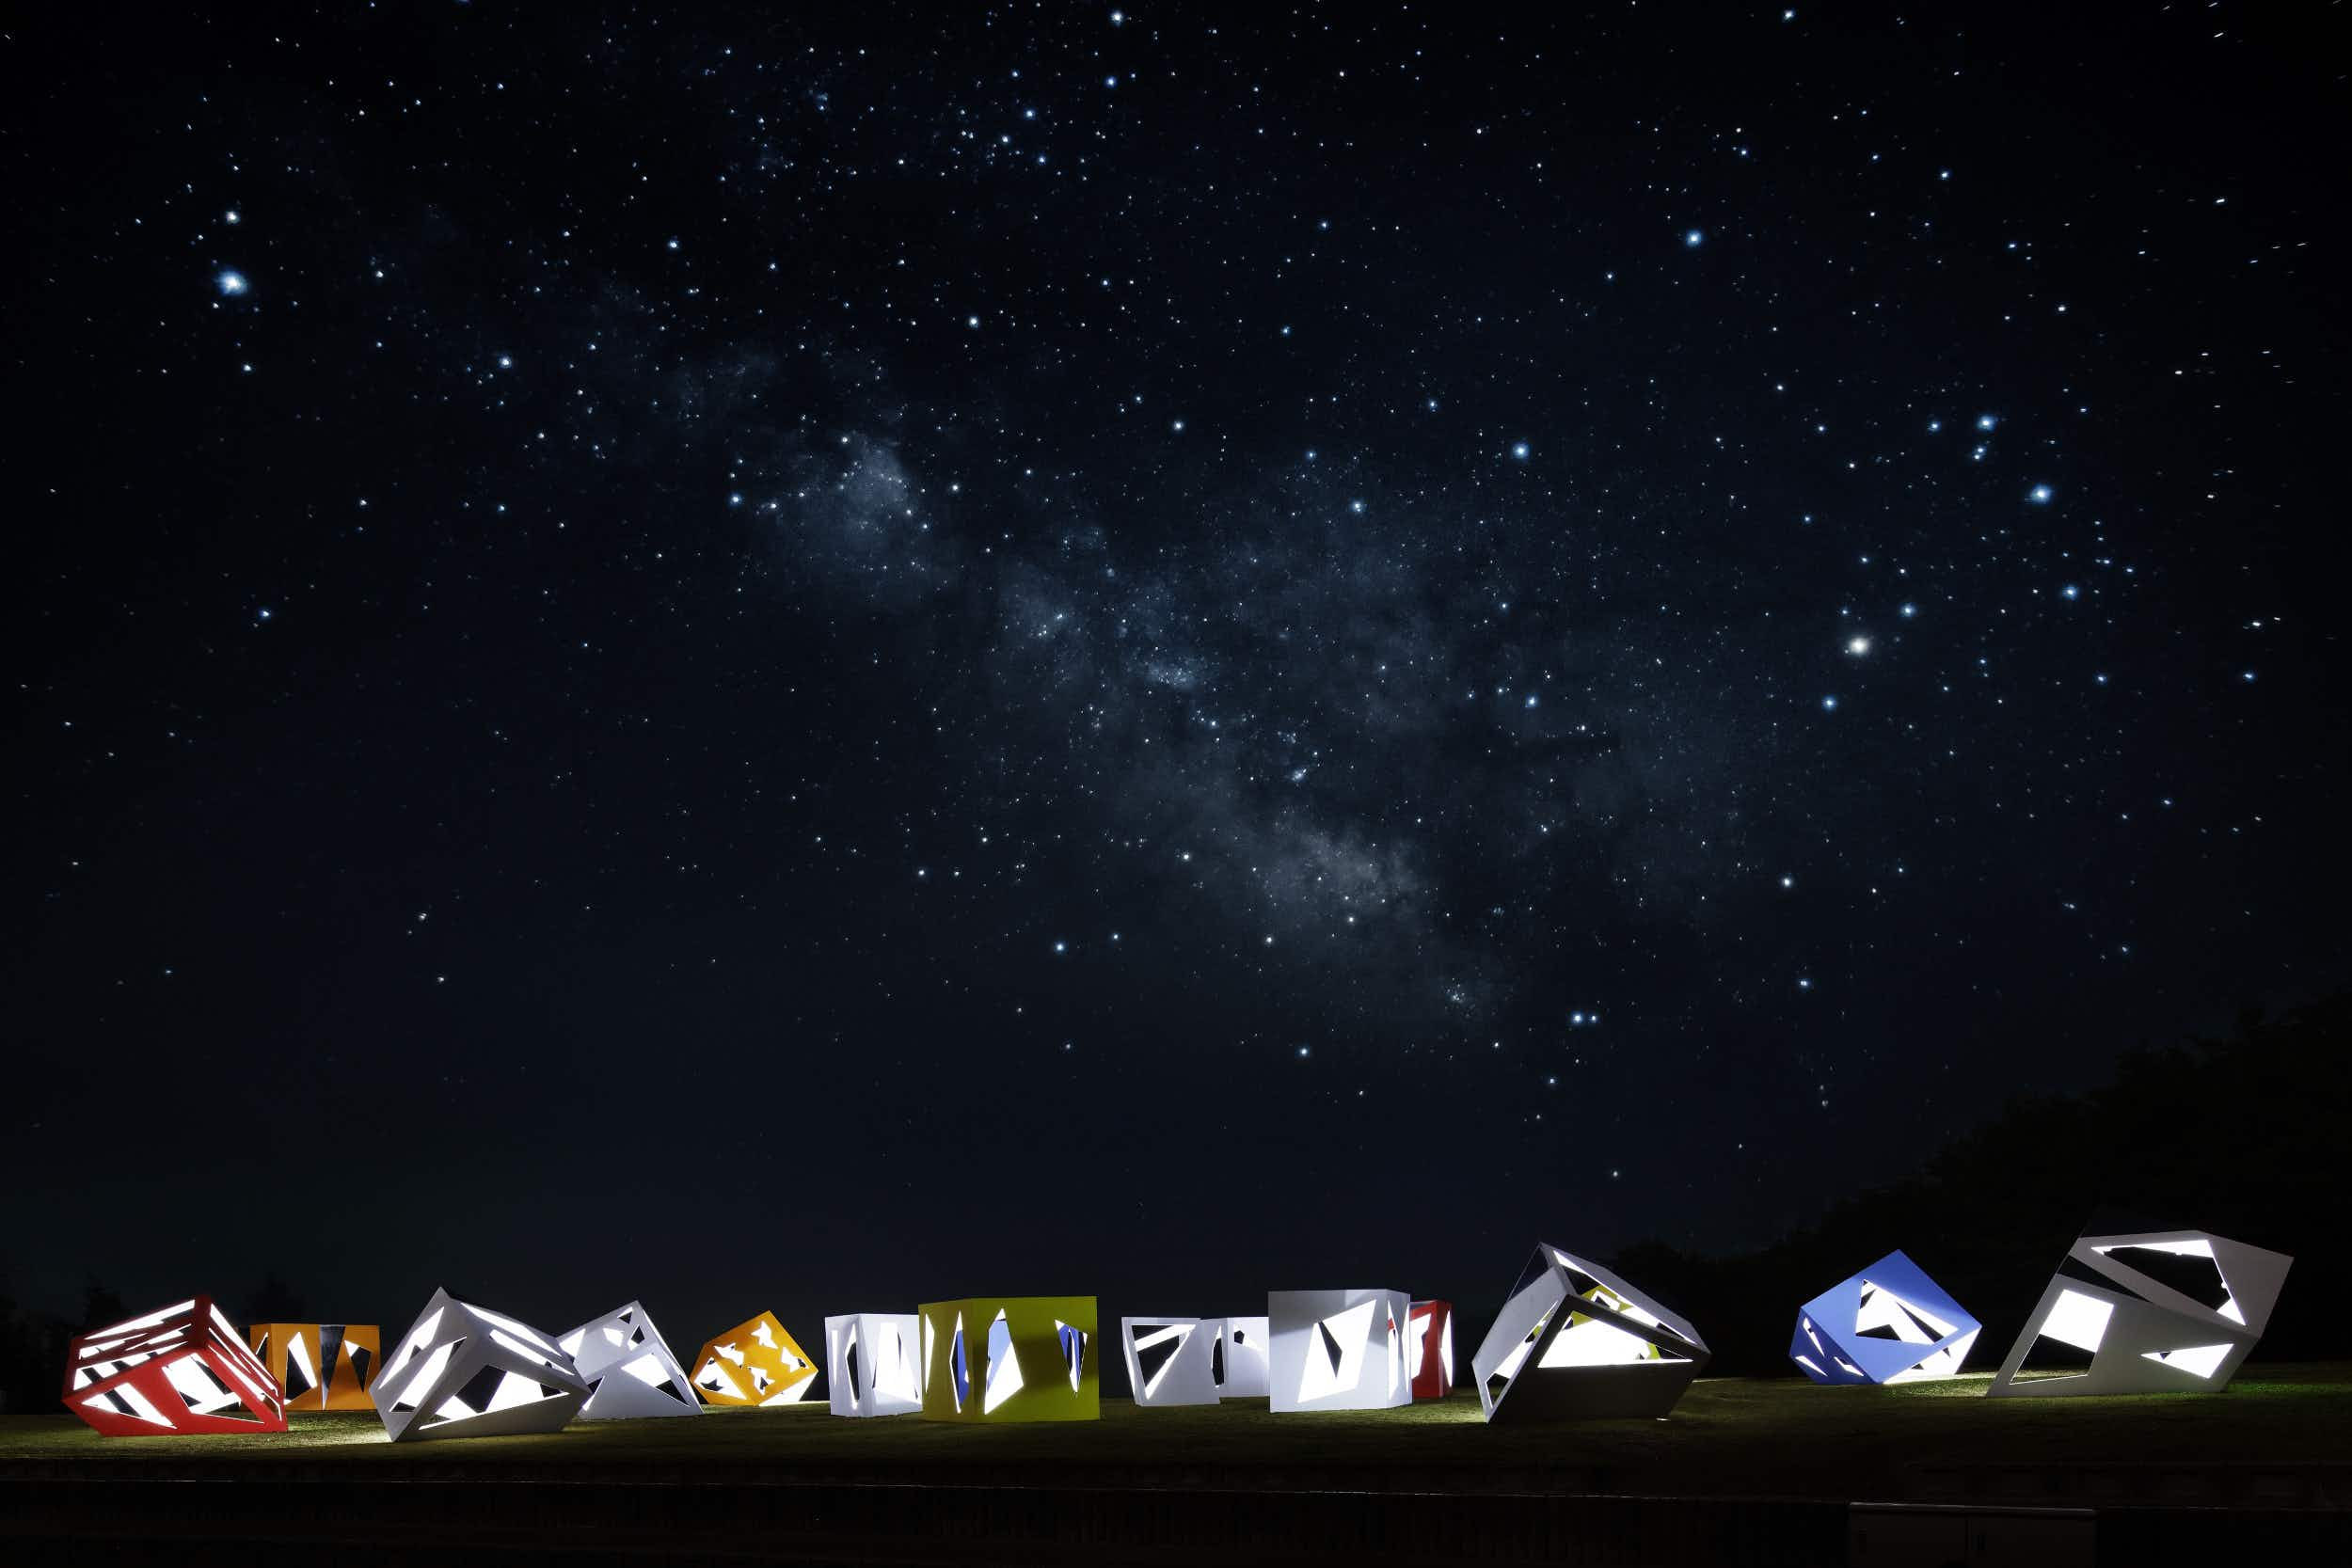 Stargaze from a cluster of colourful tea rooms amidst the rolling hills of Bisei in Japan